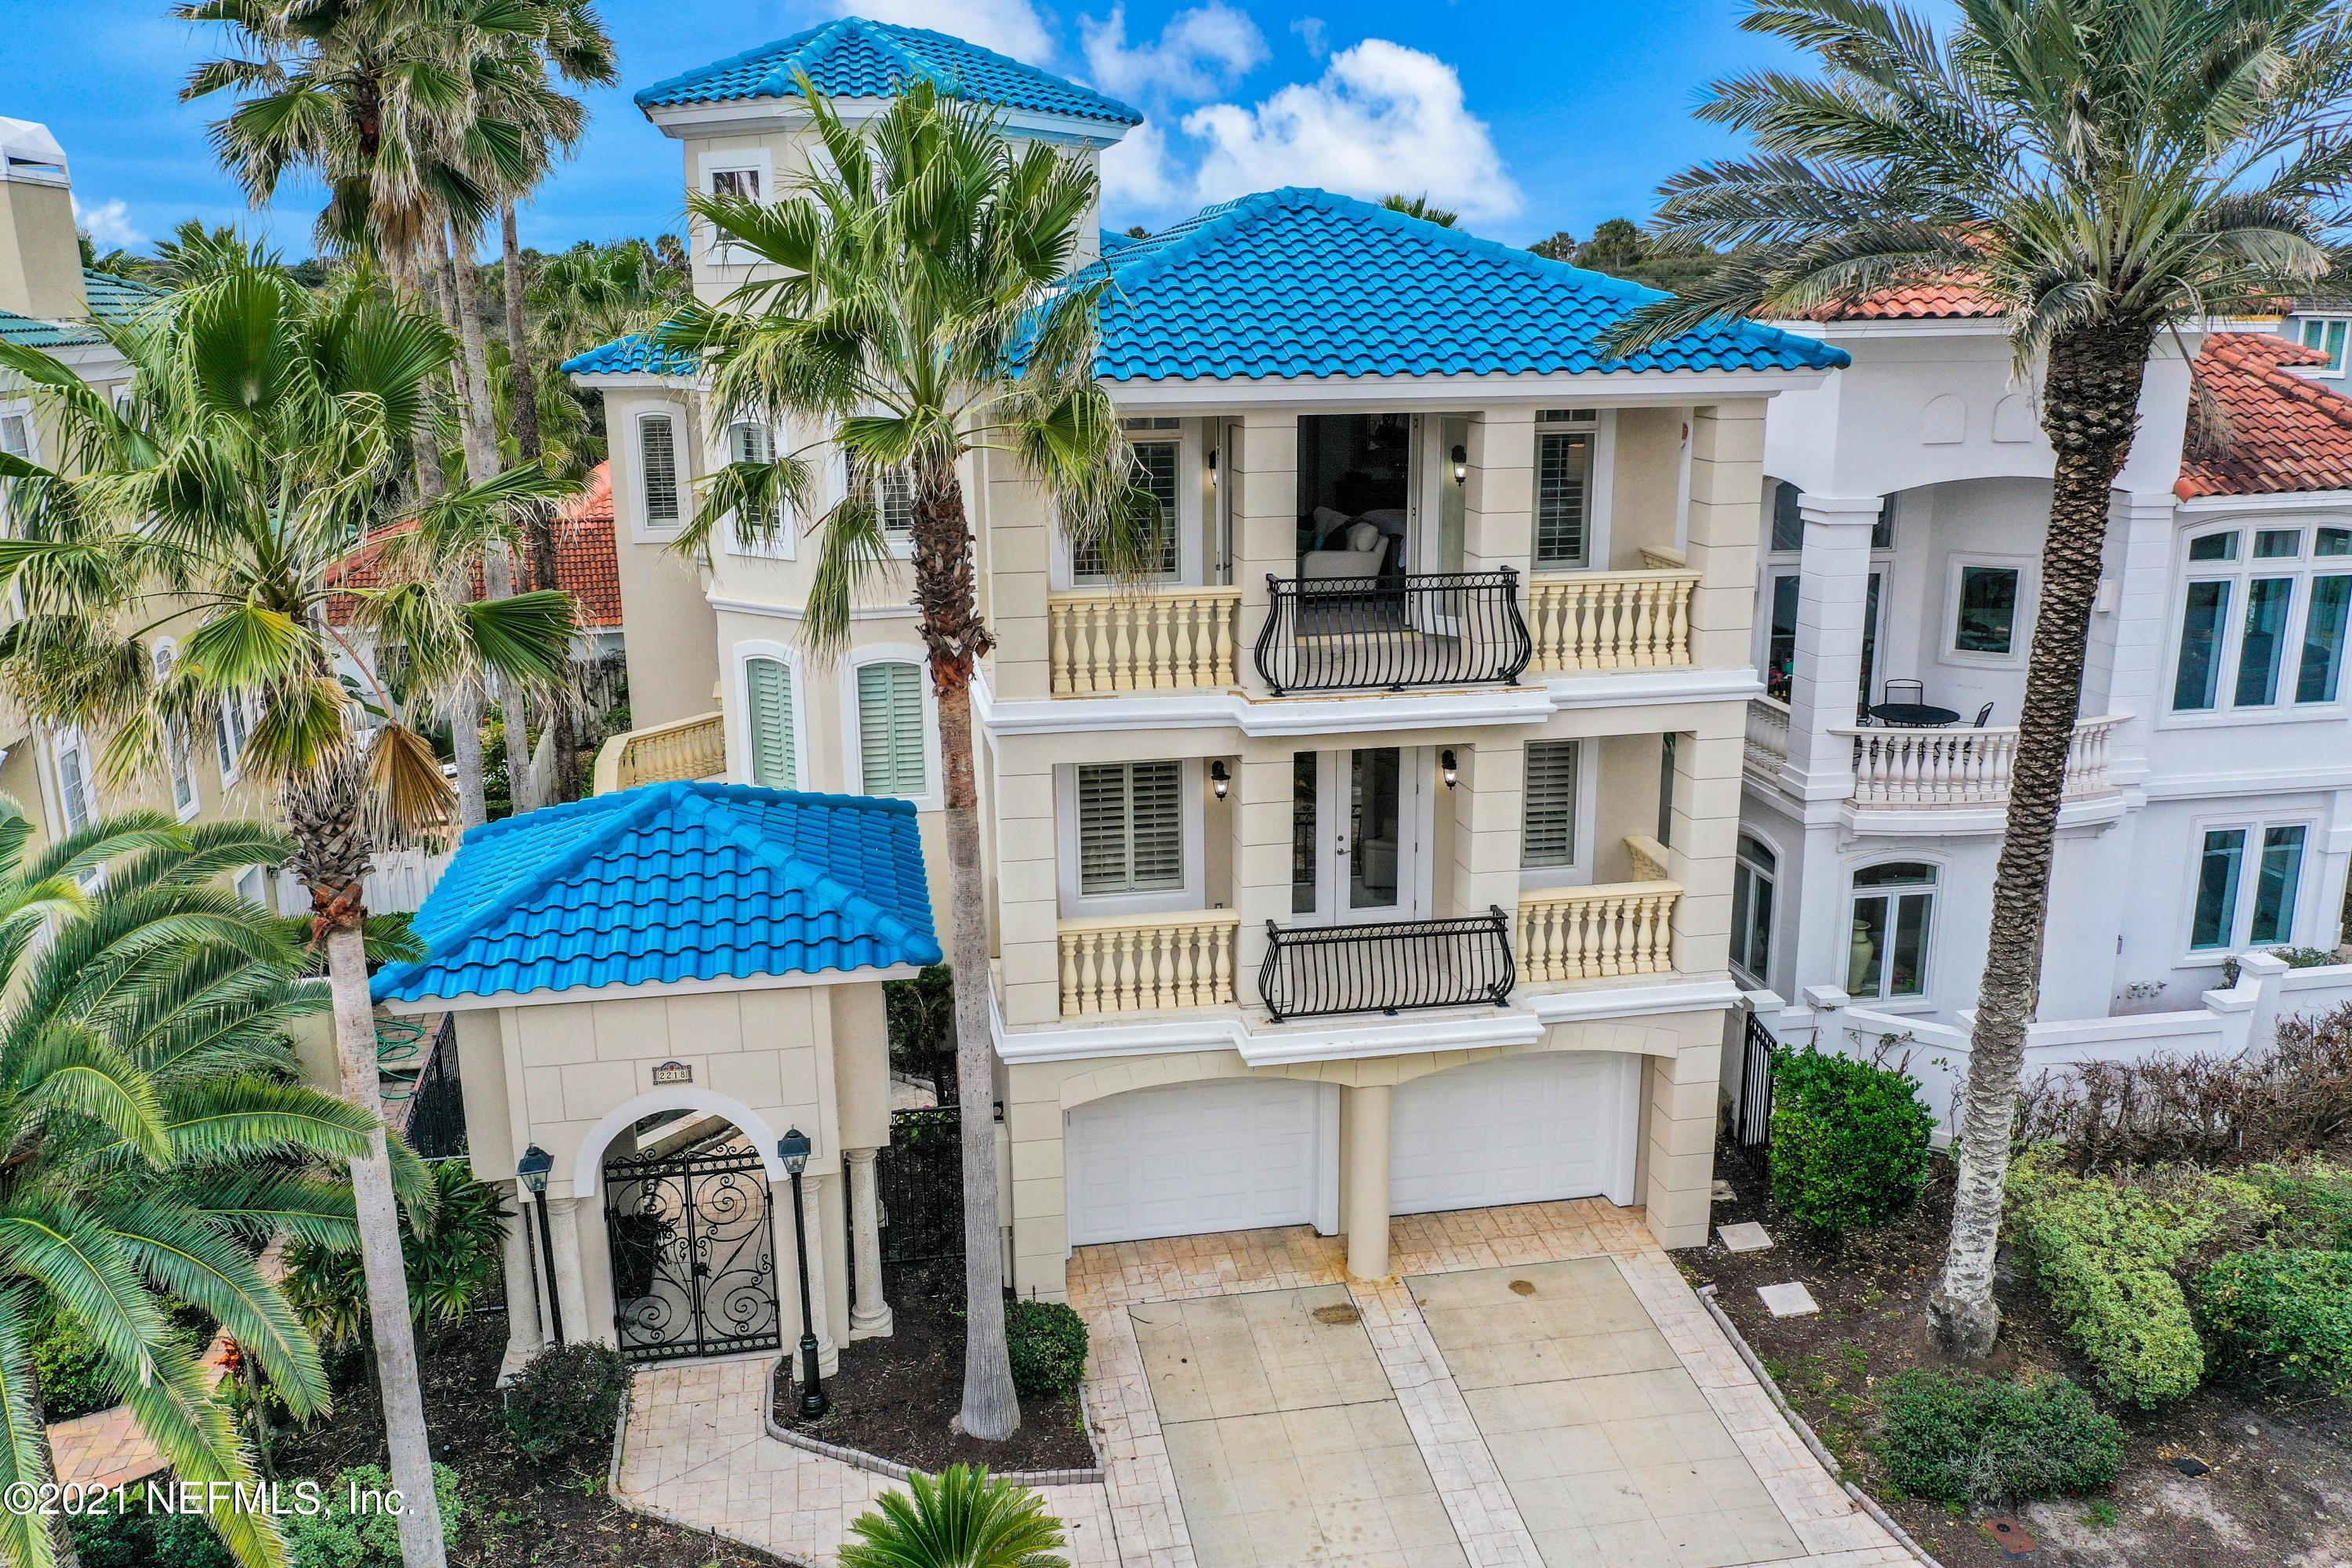 Magnificent Mediterranean style home with OCEAN VIEWS! This 3 story, 4 Bed/5 full bath, home in Atlantic Beach features 3 OCEAN FACING BALCONIES, a Spanish Style Tile roof, 4-CAR garage, NEW A/C units, Murano Italian lighting, and an EXQUISITE BRONZE FOUNTAIN in the courtyard entry. Relax by one of the two gas fireplaces (located in the master suite & living room), or work in style from the luxurious office boasting CHERRY WALLS AND CABINETRY. The Master Suite is it's own oasis with a large built in wine rack, personal Refrigerator, & separate sitting area w/ beverage station. The Kitchen features GRANITE COUNTERS, large food prep island complete with sink, Gas Stove, Sub-Zero Refrigerator, and a Wine Cooler. This is a must see home, so schedule your appointment today!